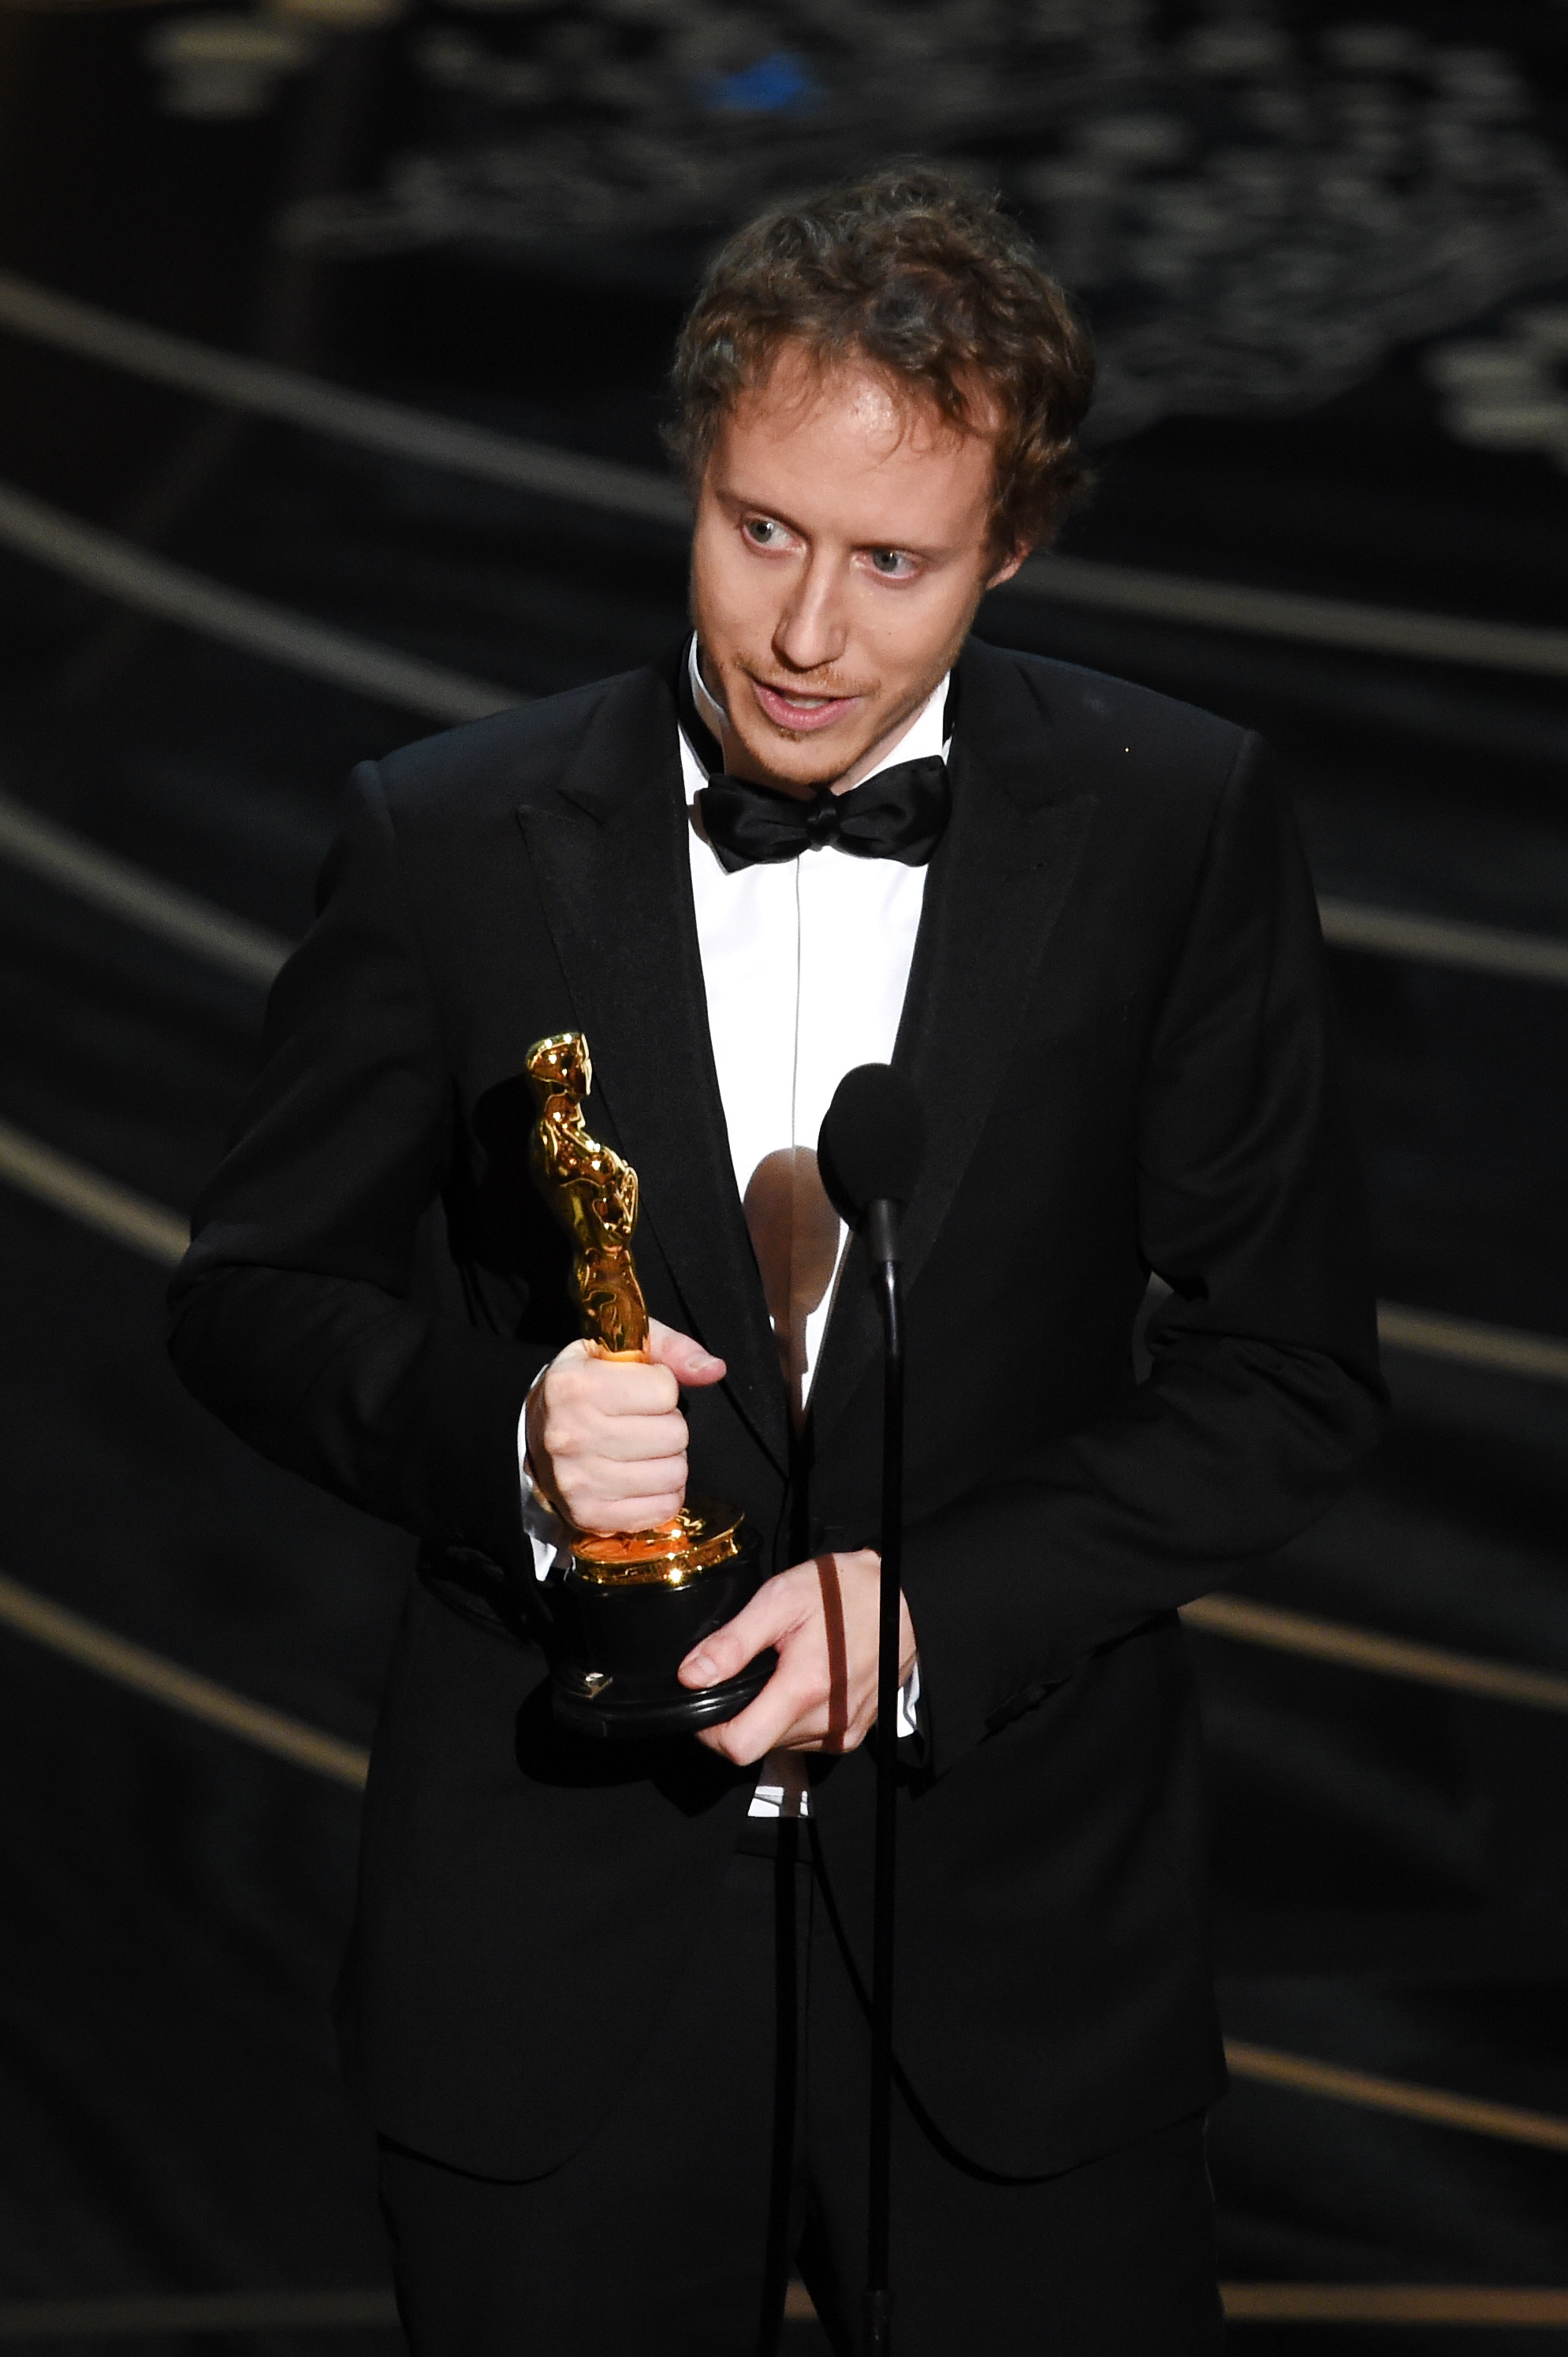 Laszlo Nemes, director of Son of Saul, receives the award for Best Foreign Language Film at the 88th Annual Academy Awards. (Photo courtesy of The Oscar)